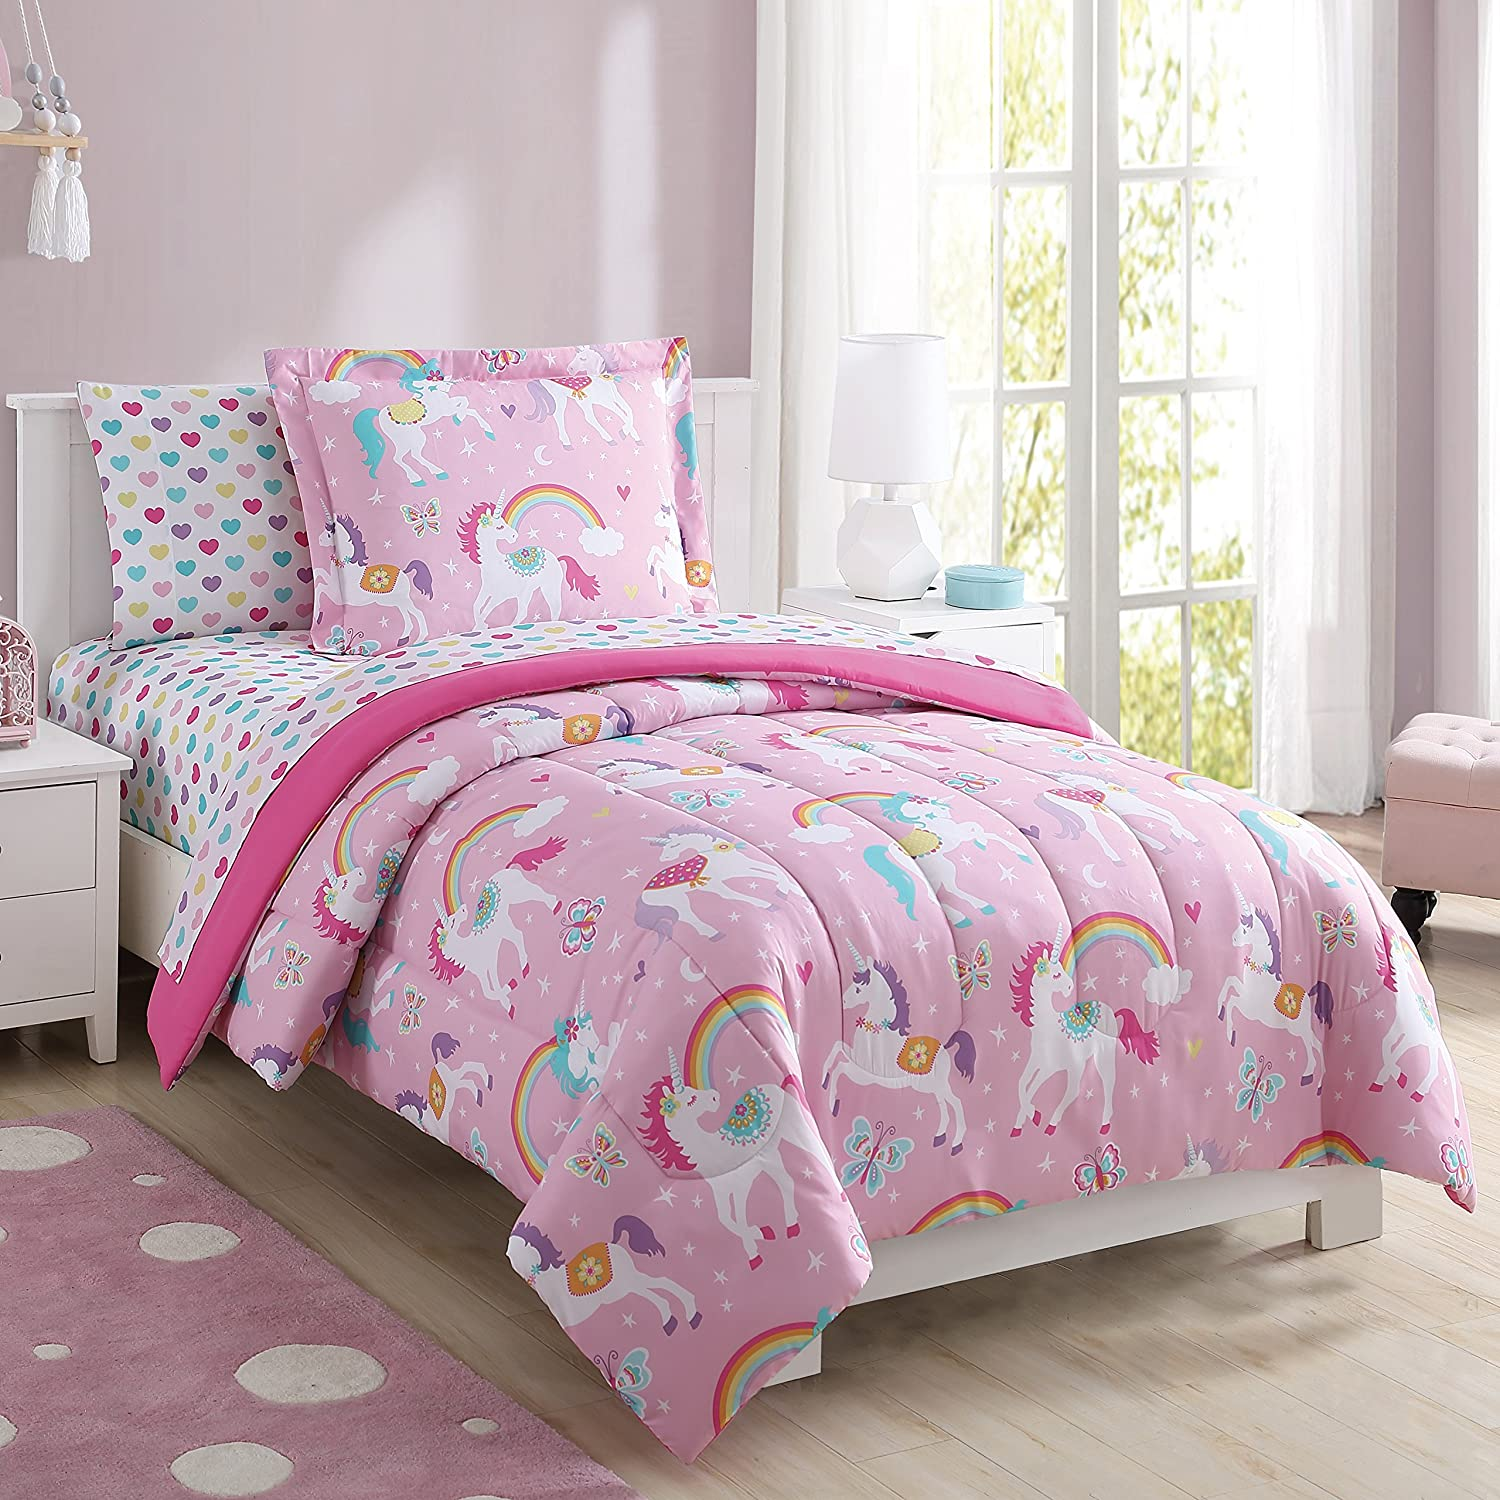 Super Soft, Cute, Fun and Whimsical Mainstays Kids Rainbow Unicorn With Images of Unicorns. Butterflies and Rainbows Girls Bed in a Bag Complete Bedding Set, Pink, Full